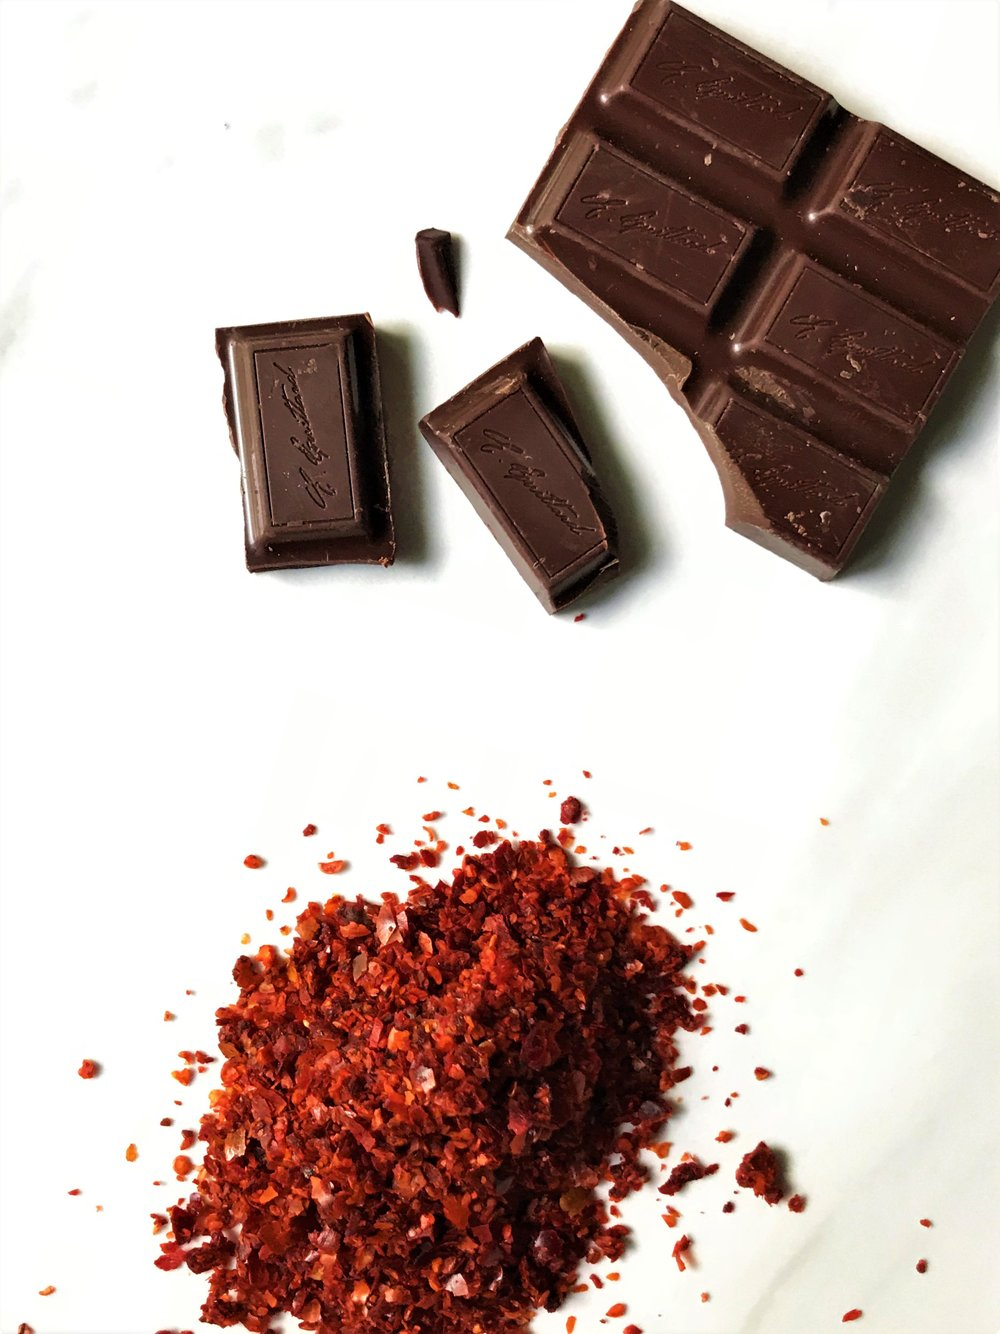 Aleppo pepper and semisweet chocolate, ready and waiting to be made into (sp)Ice Pops.